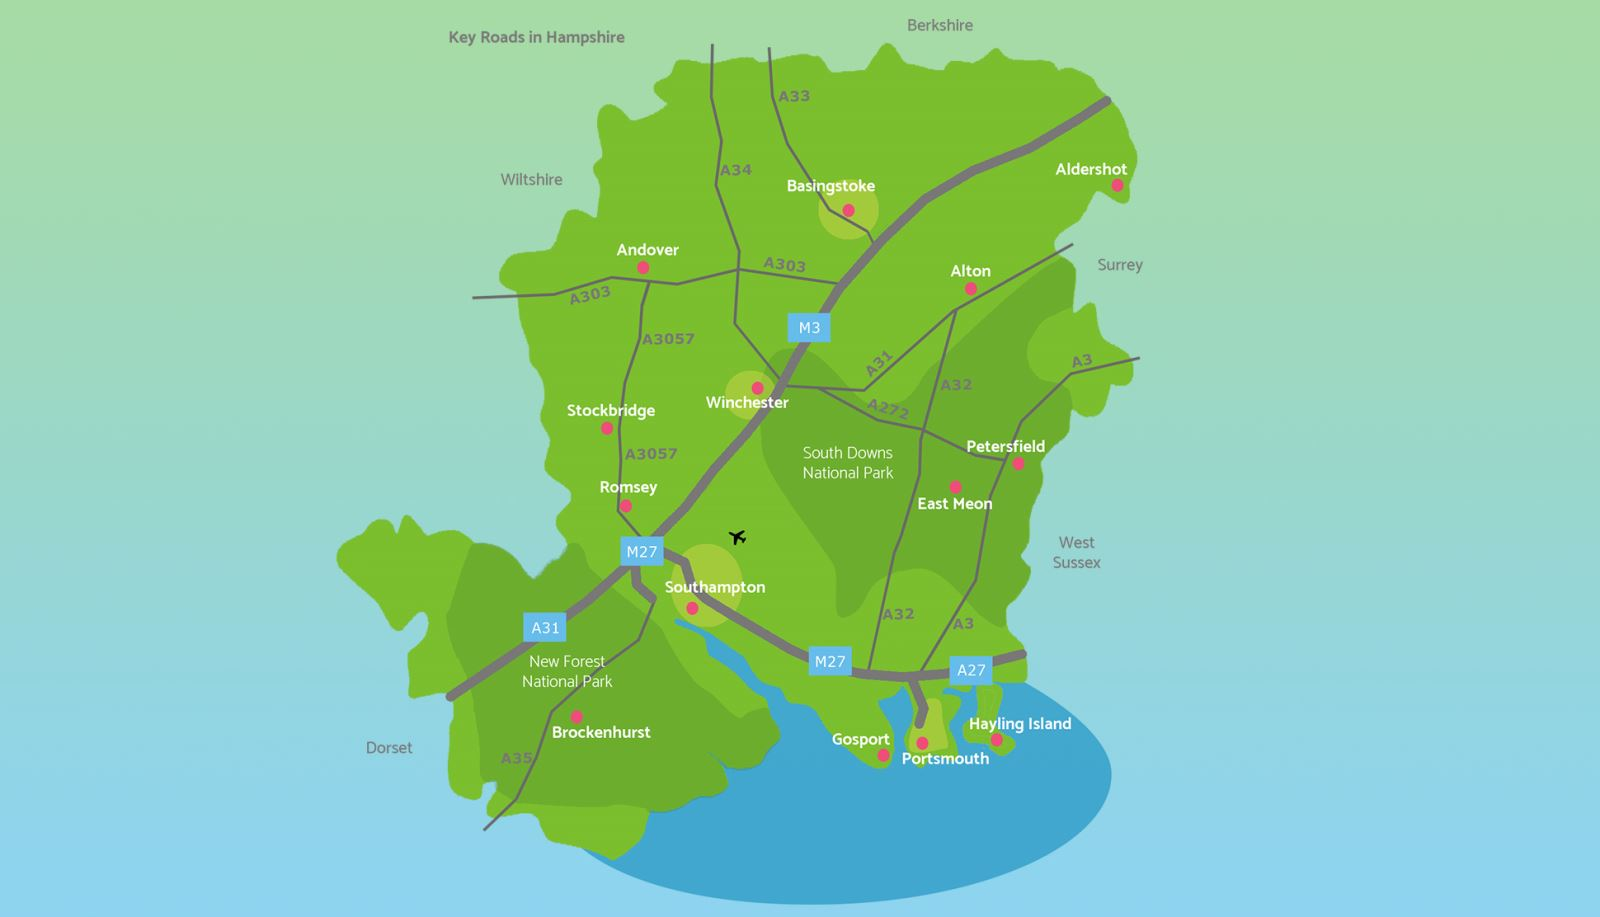 Map of Hampshire showing key roads, towns and cities